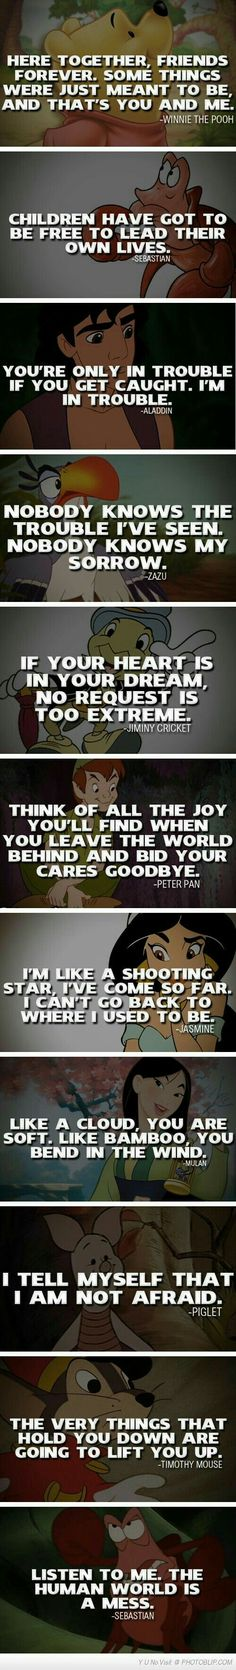 Just some more really fun Disney quotes I love!